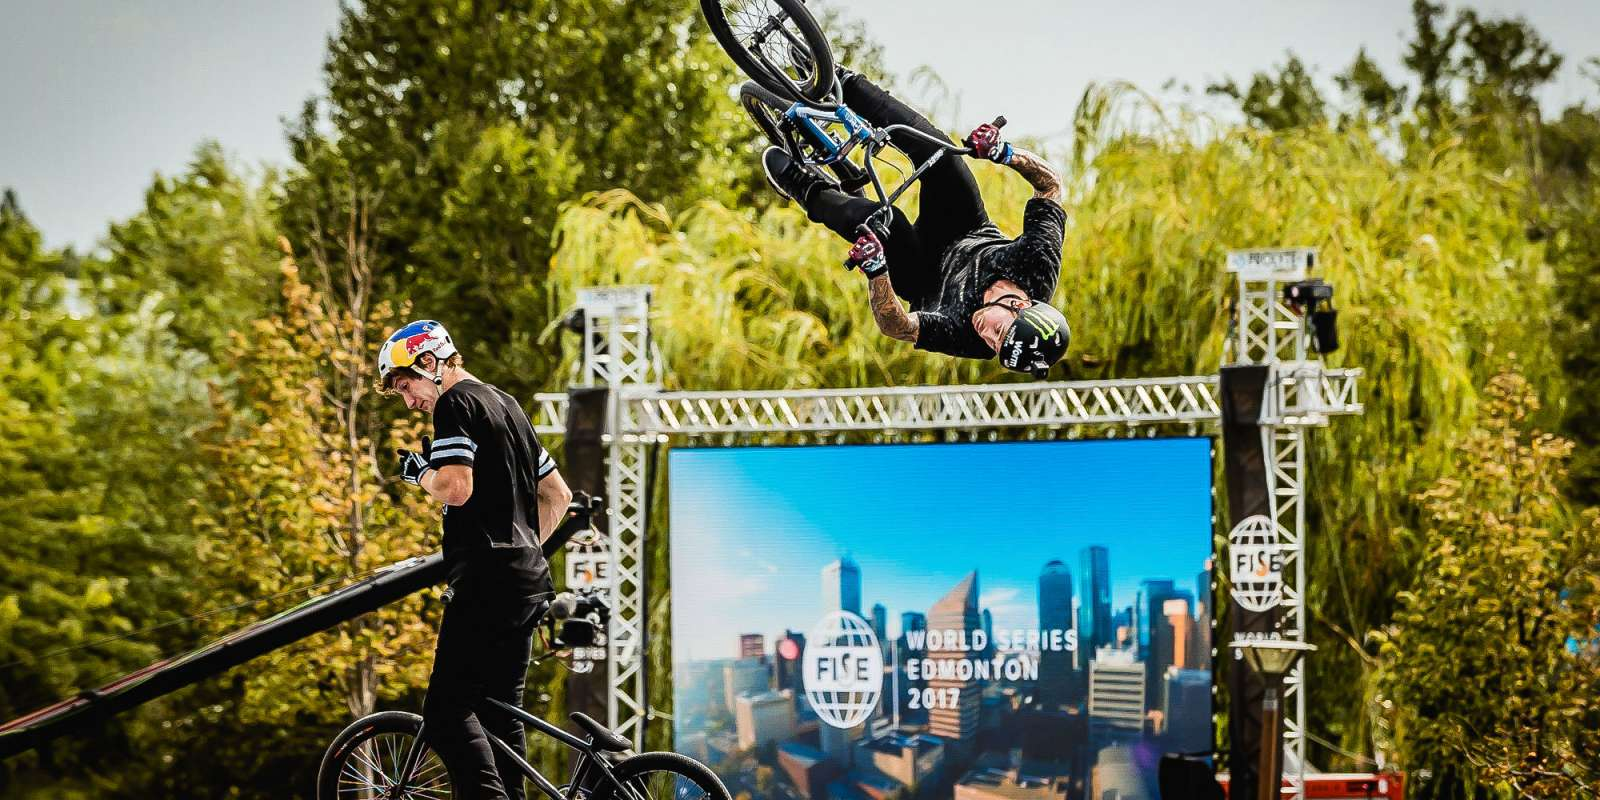 Pictures from FISE Budapest 2017 in Hungary with Monster Energy riders